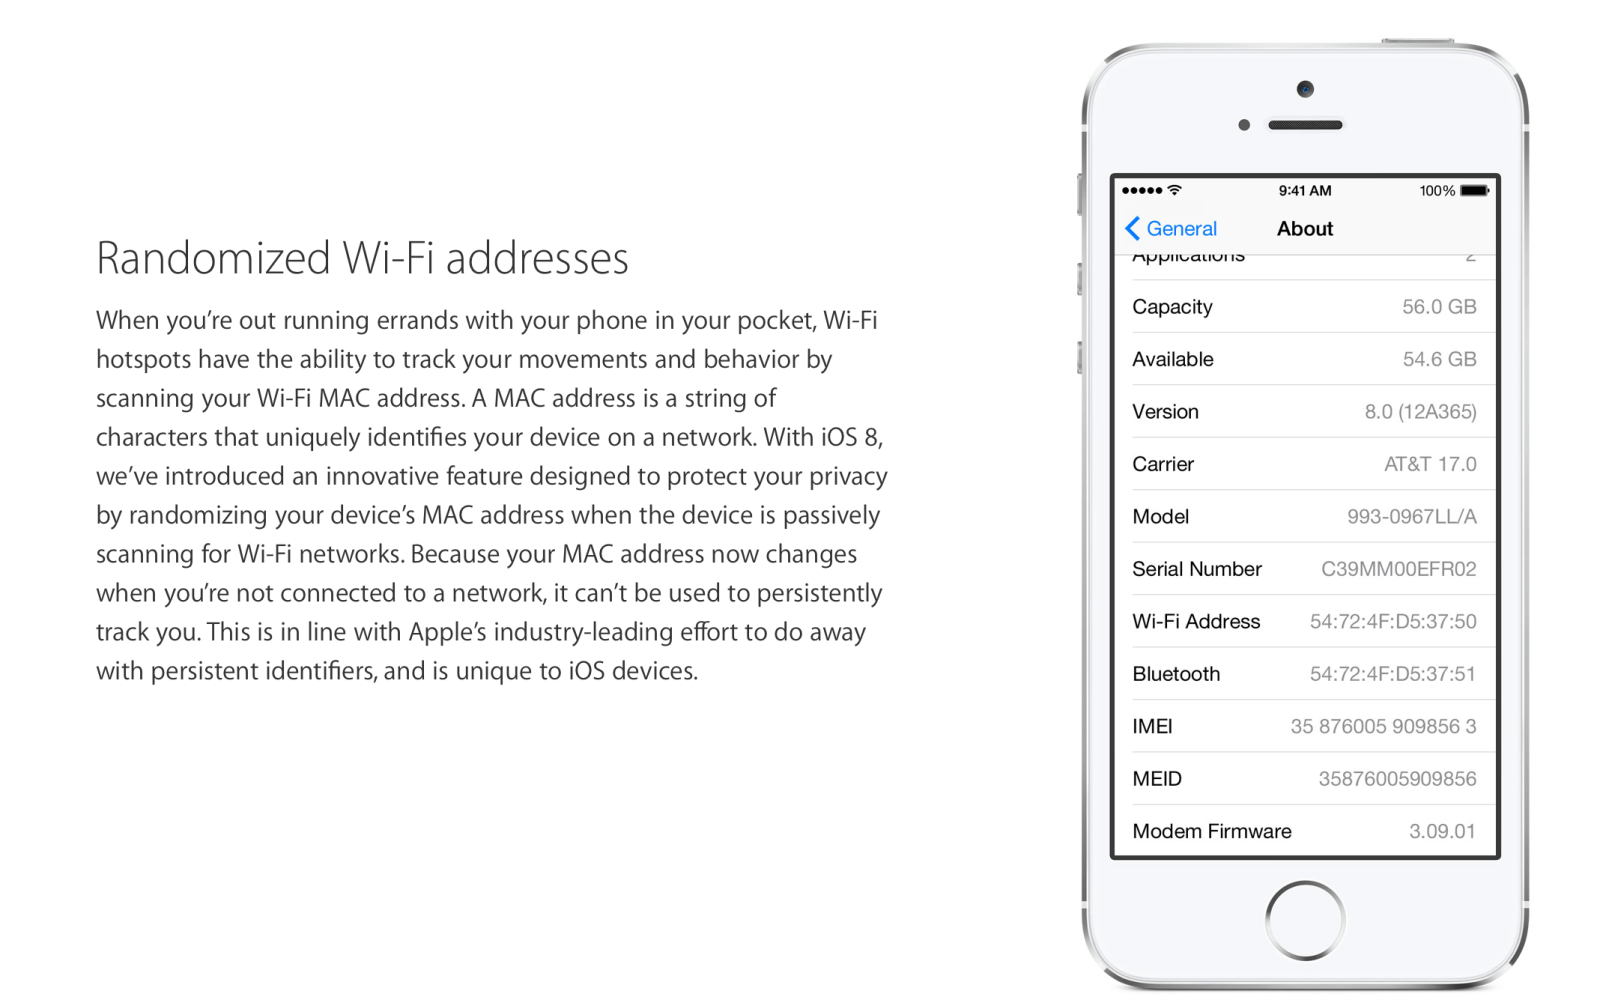 More details on how iOS 8's MAC address randomization feature works (and when it doesn't)